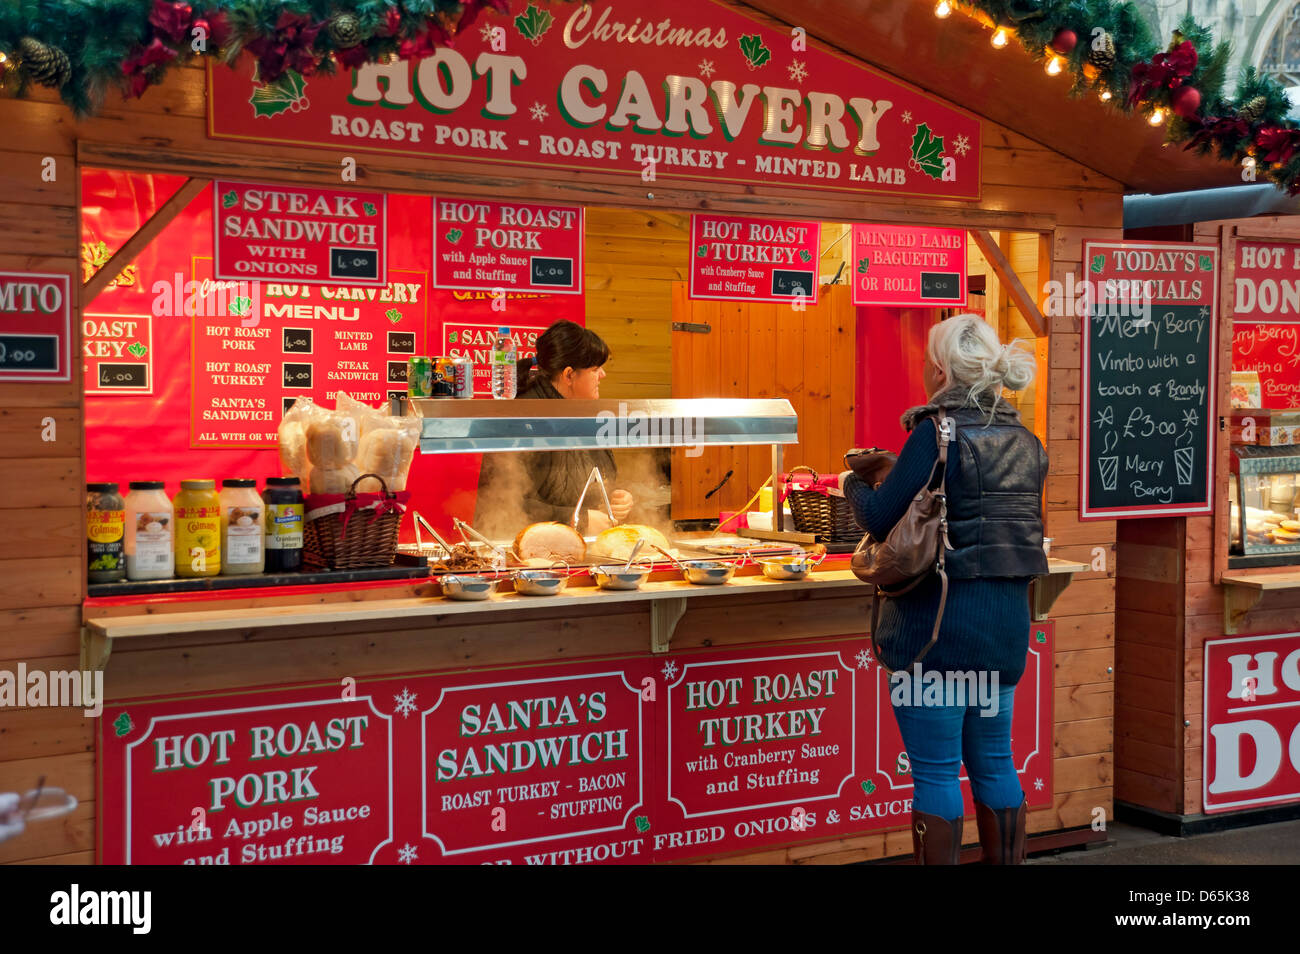 Hot Food Stall Stock Photos & Hot Food Stall Stock Images - Alamy